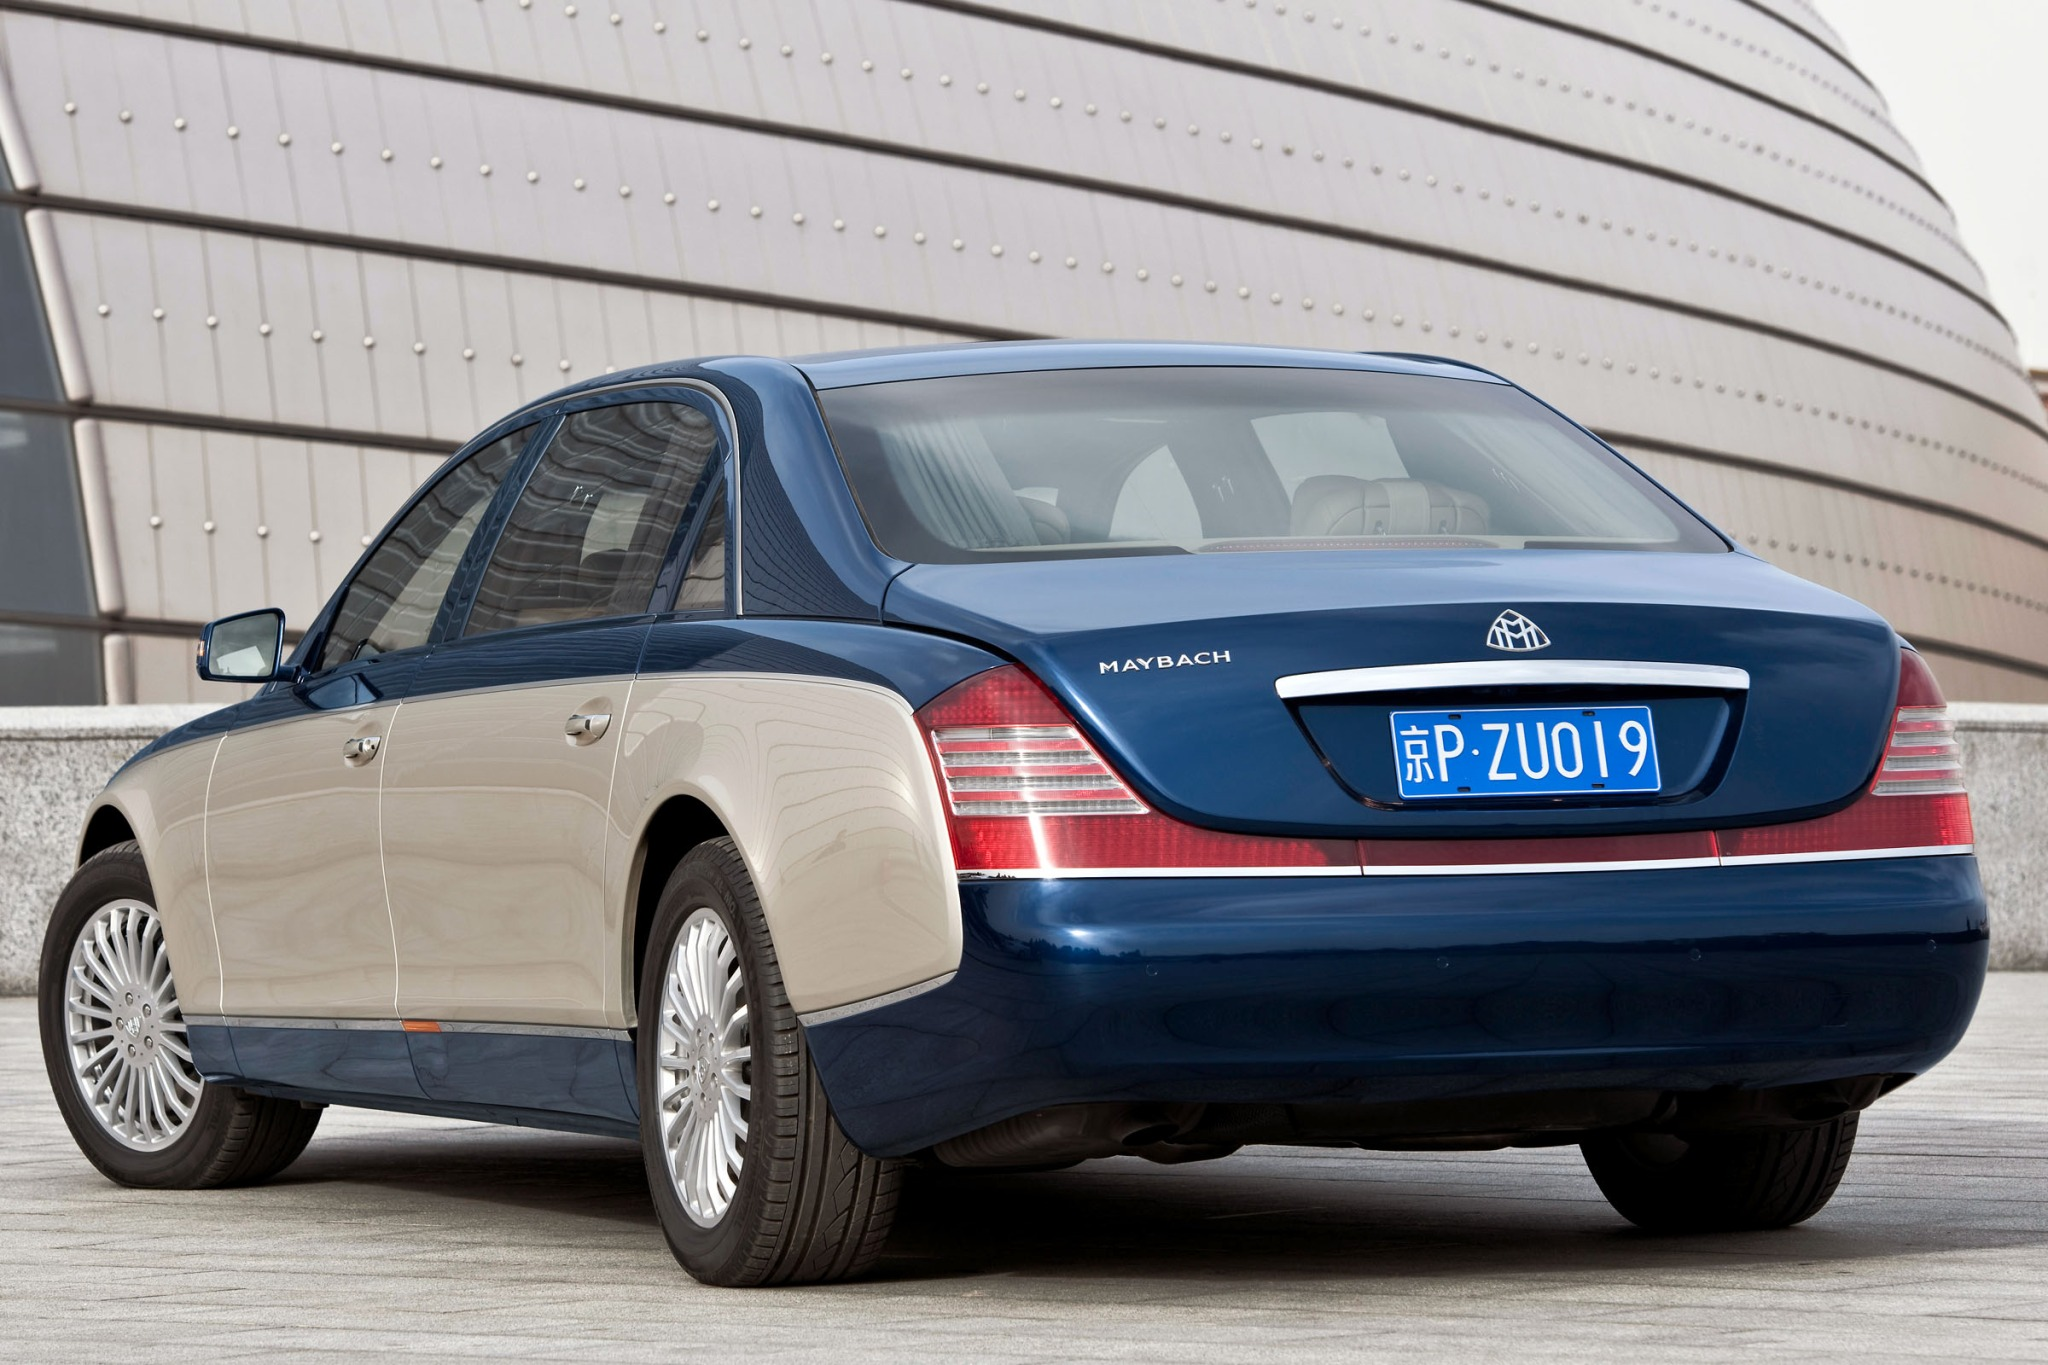 2012 Maybach 62 Sedan Rea interior #4